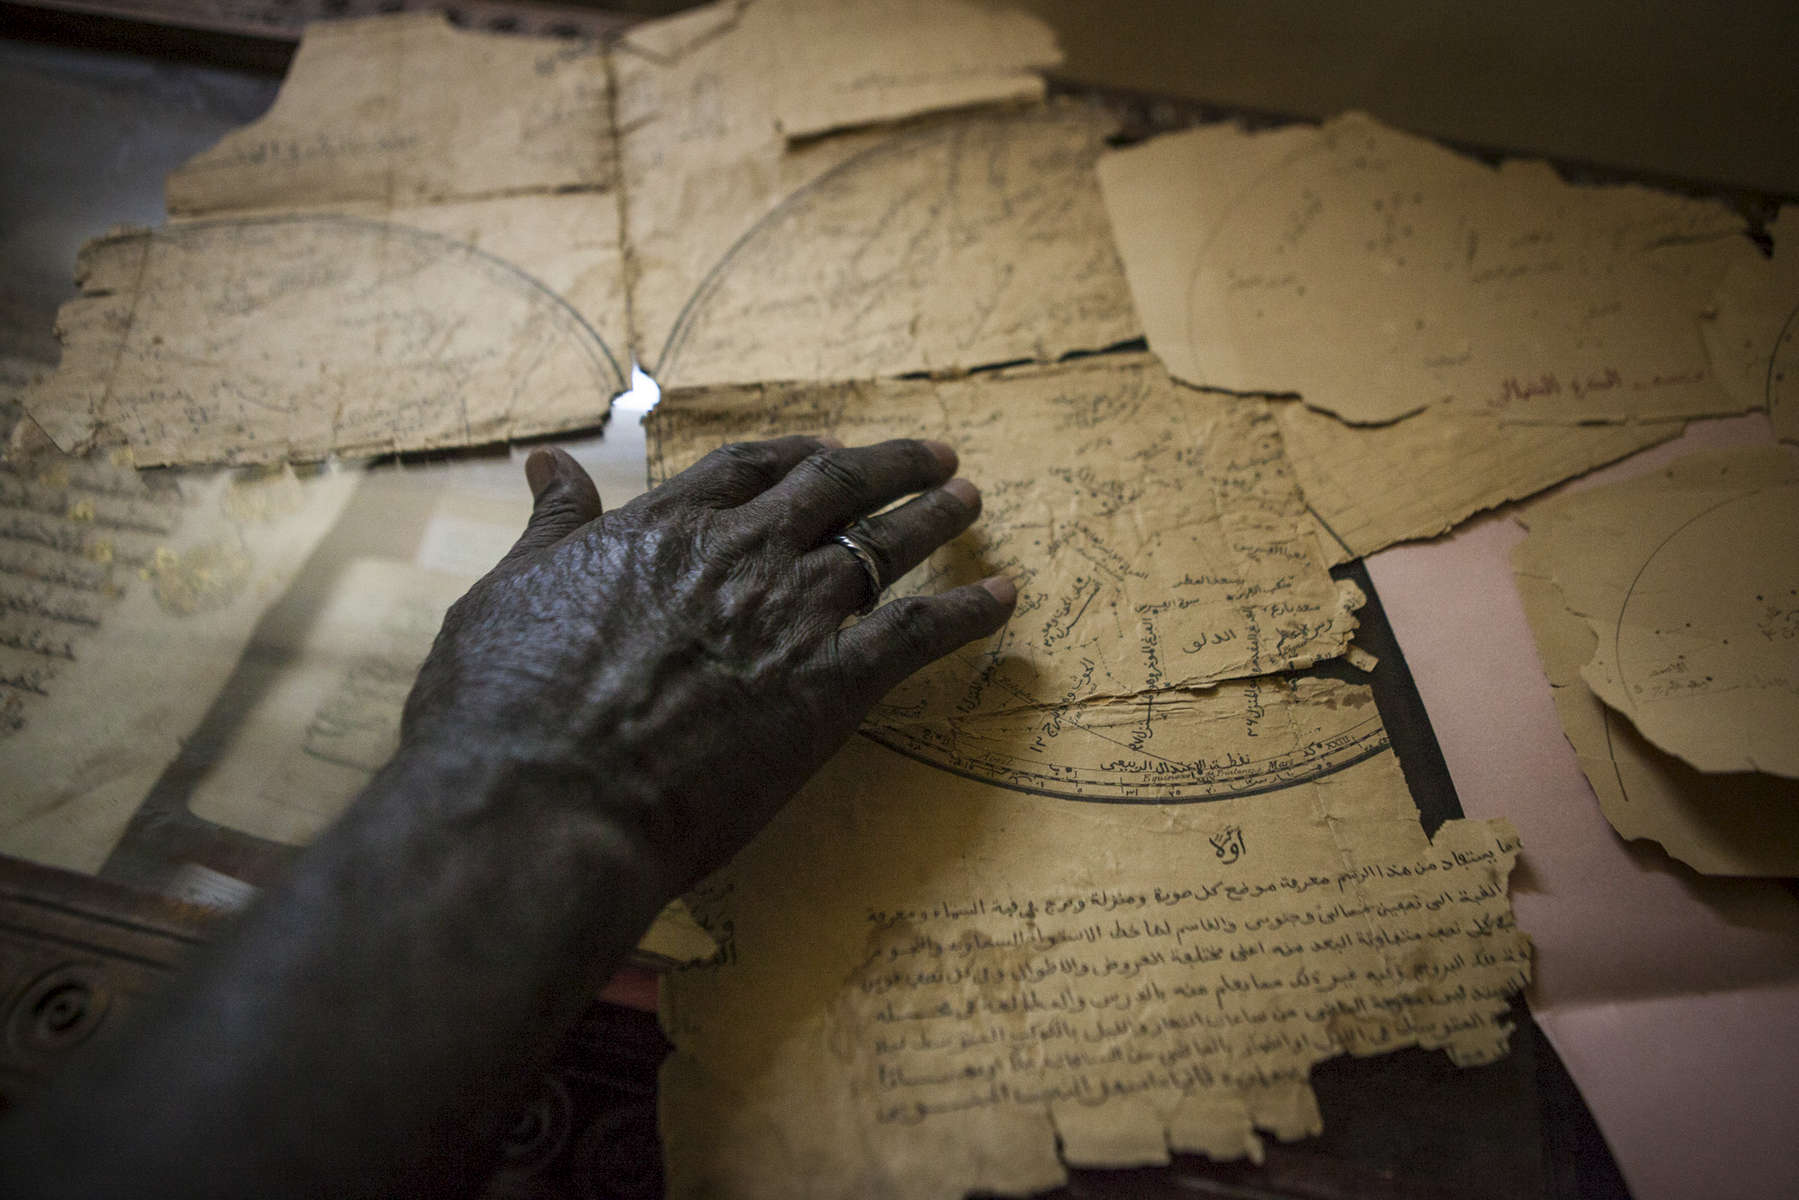 A librarian displays an astronomy manuscript at the Manuscript Library in Timbuktu, Mali on Monday, January 9, 2017. While Timbuktu was occupied, scores of manuscripts were destroyed but through an international effort, the majority of manuscripts were smuggled out of the city and saved.